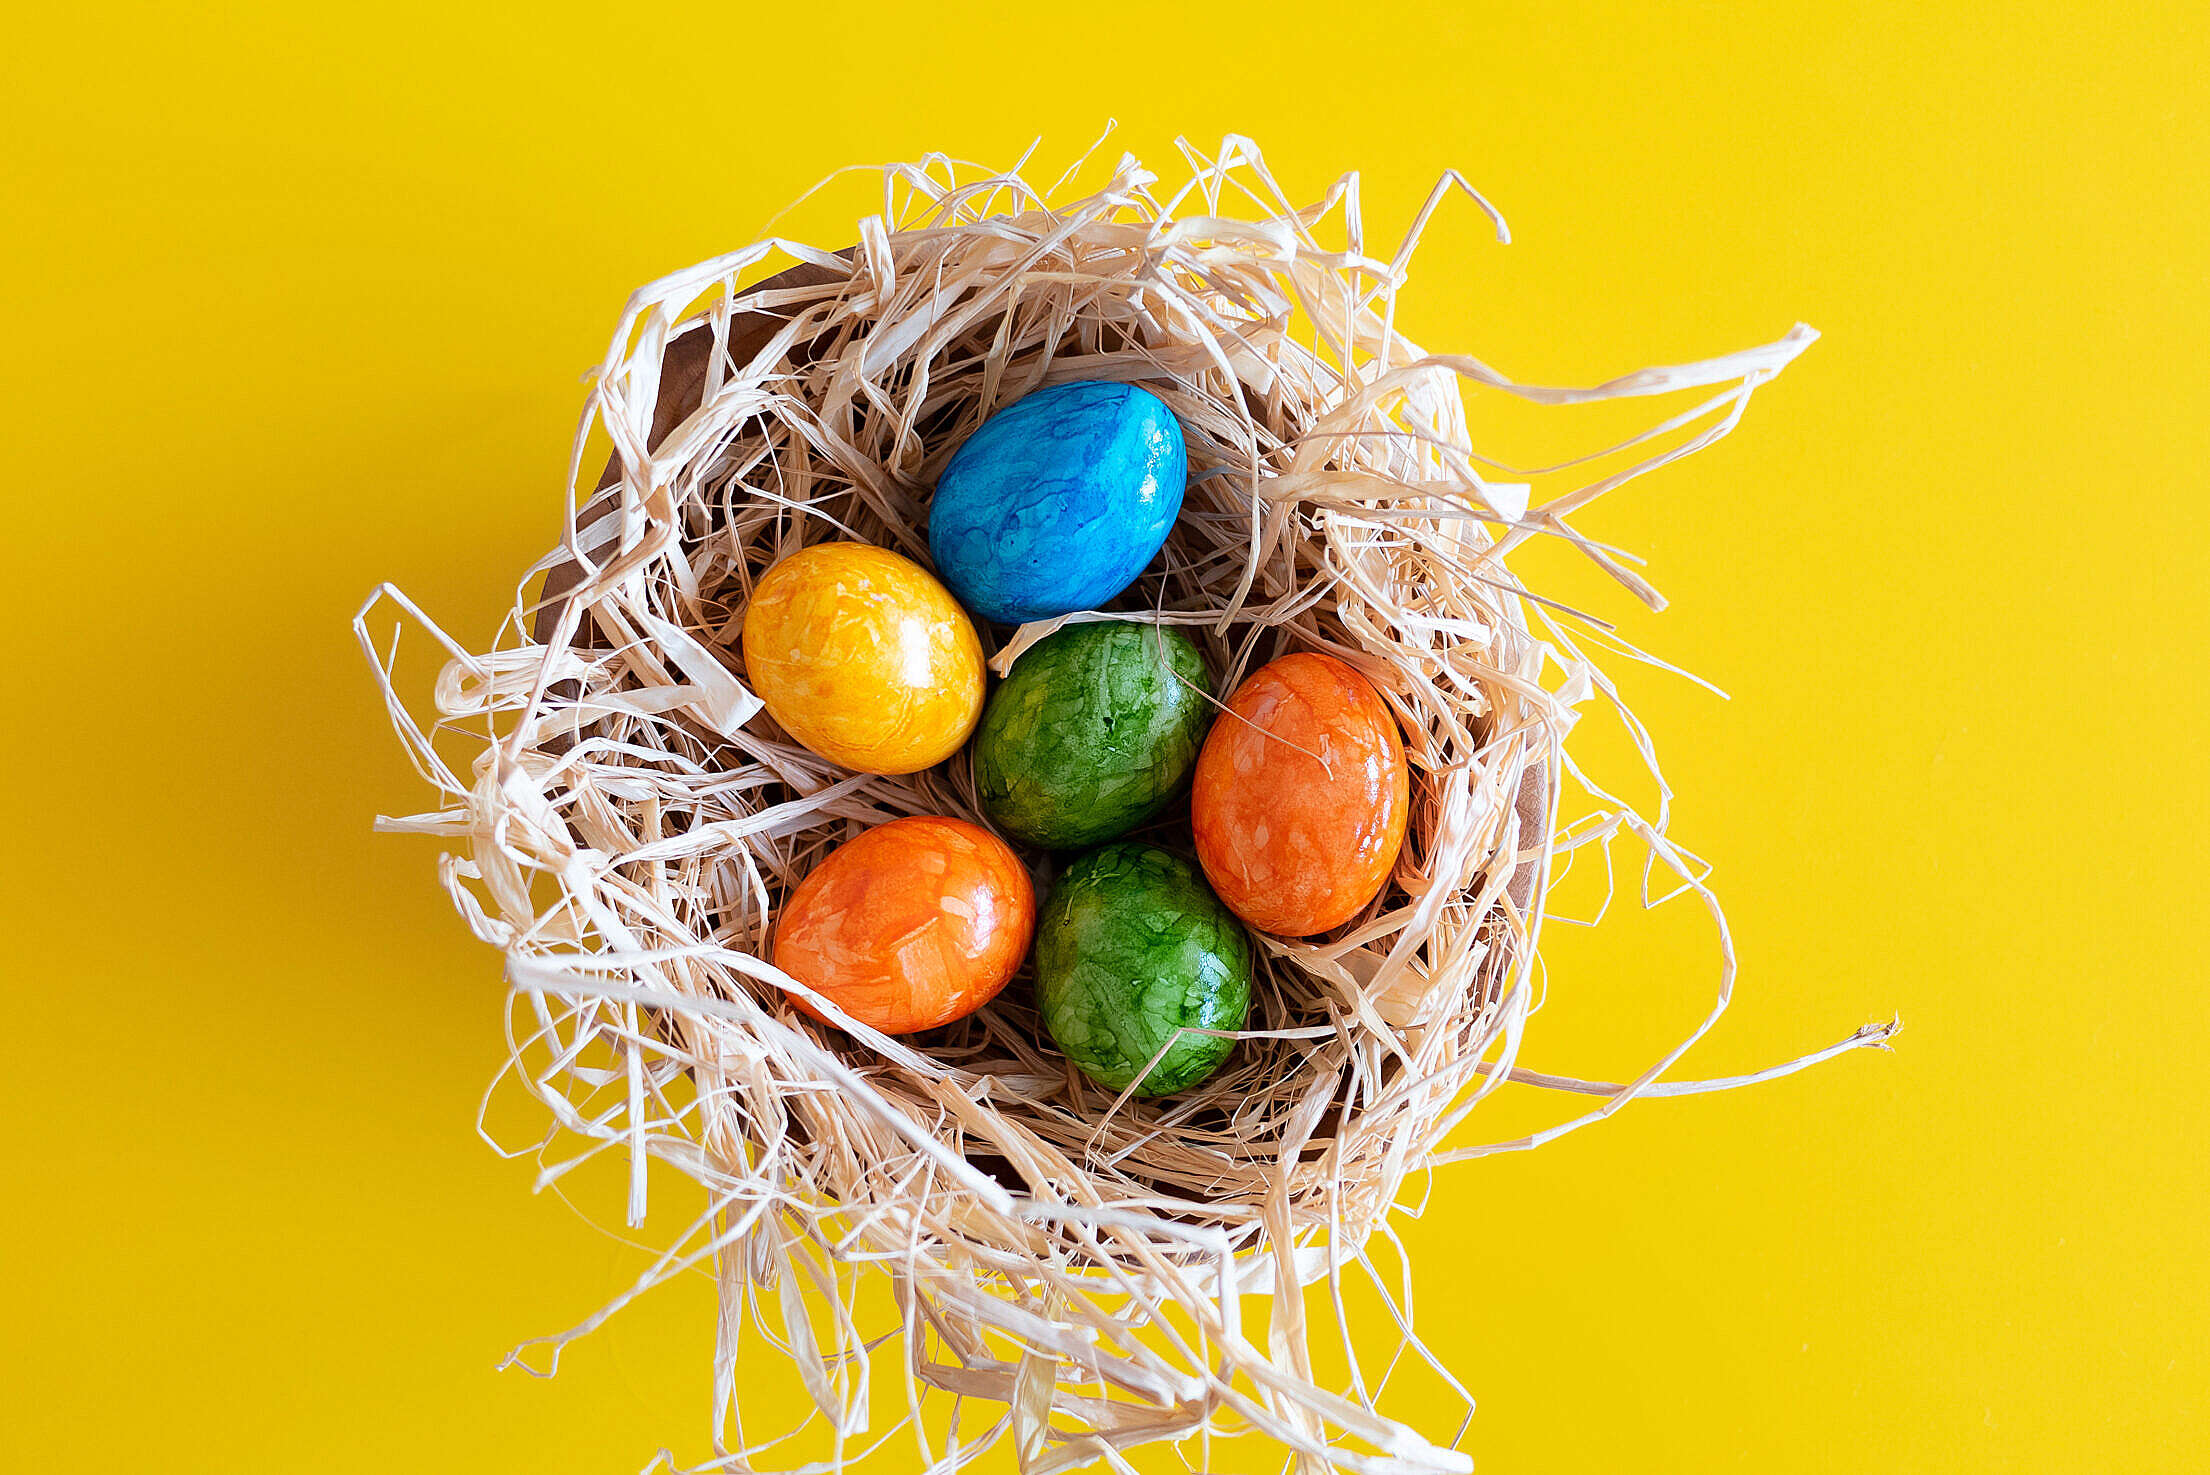 Colored Eggs on Easter Holidays Free Stock Photo